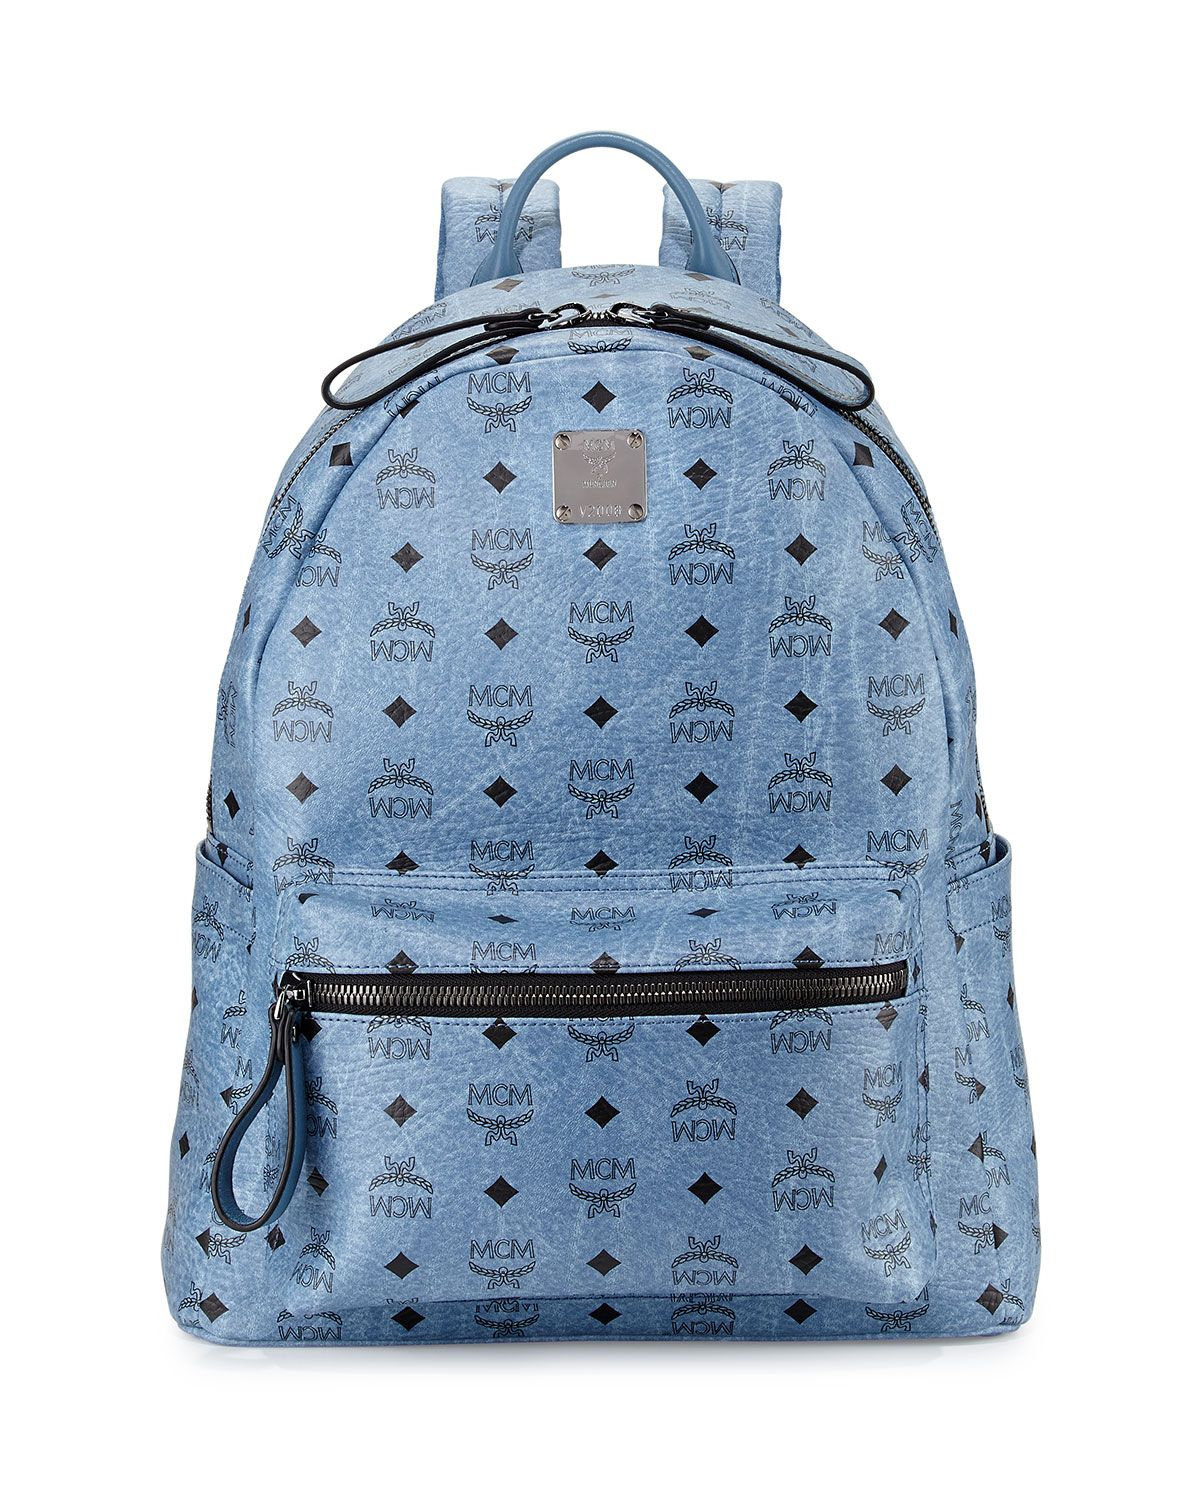 d2b6640cc20 Stark No Stud Medium Backpack, Denim (Blue) - MCM | *Luggage & Bags ...